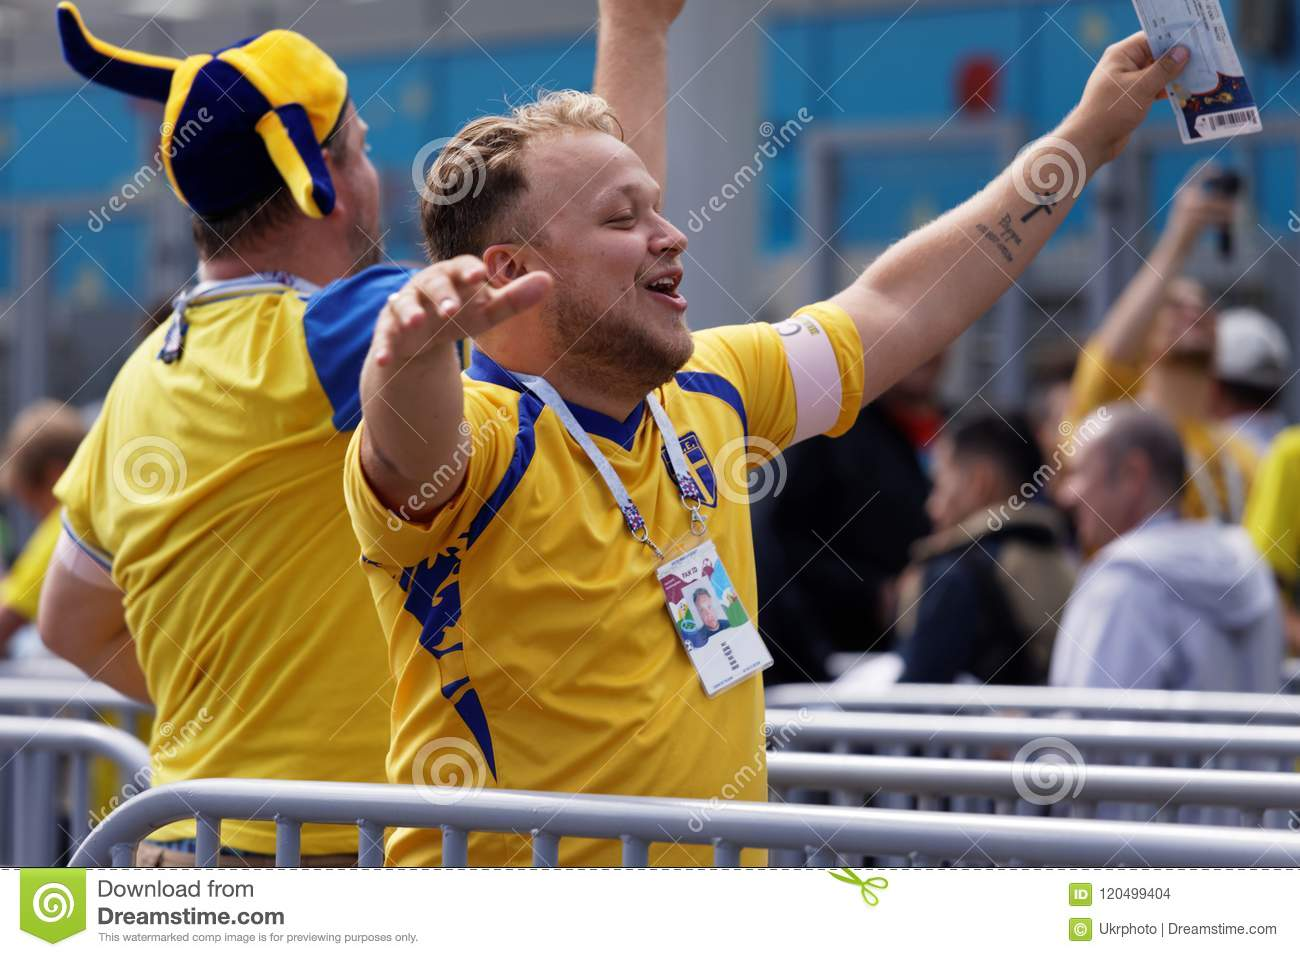 d4f4f4958b8 St. Petersburg, Russia - July 3, 2018: Swedish football fans singing at  Saint Petersburg stadium before the match of FIFA World Cup 2018 Sweden vs  ...